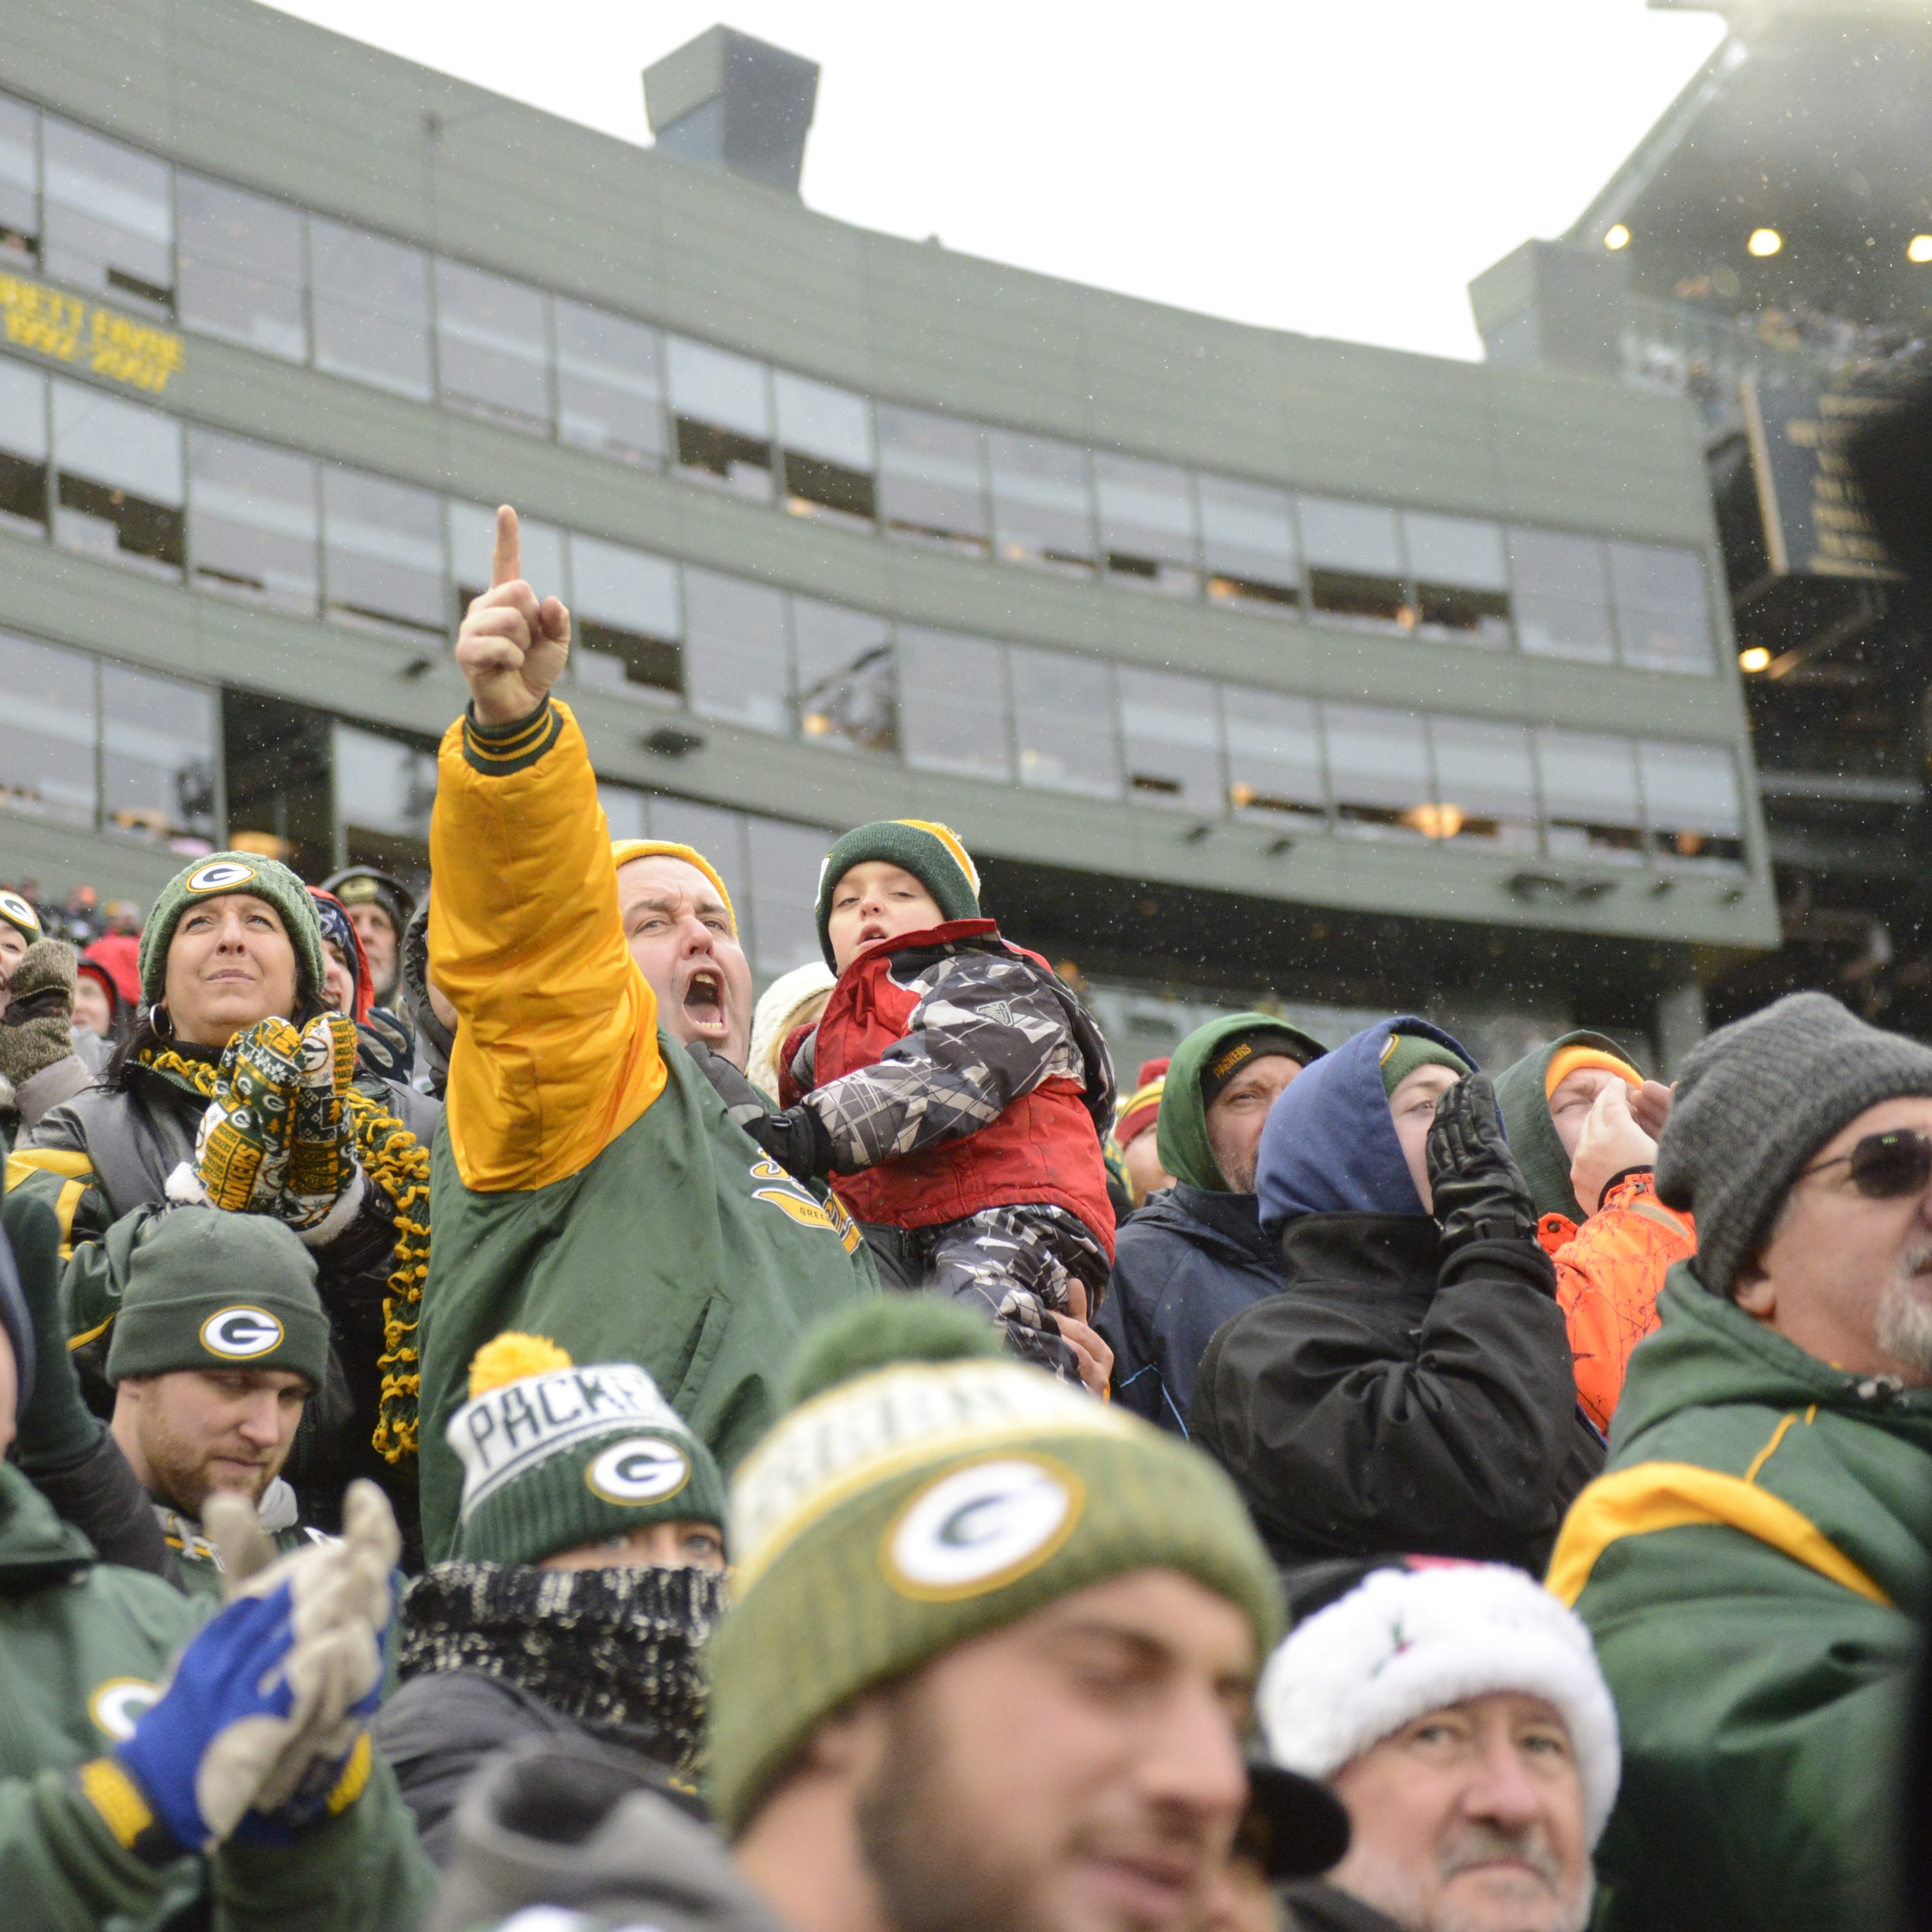 Packers fans' reactions to ticket price increases come from every direction